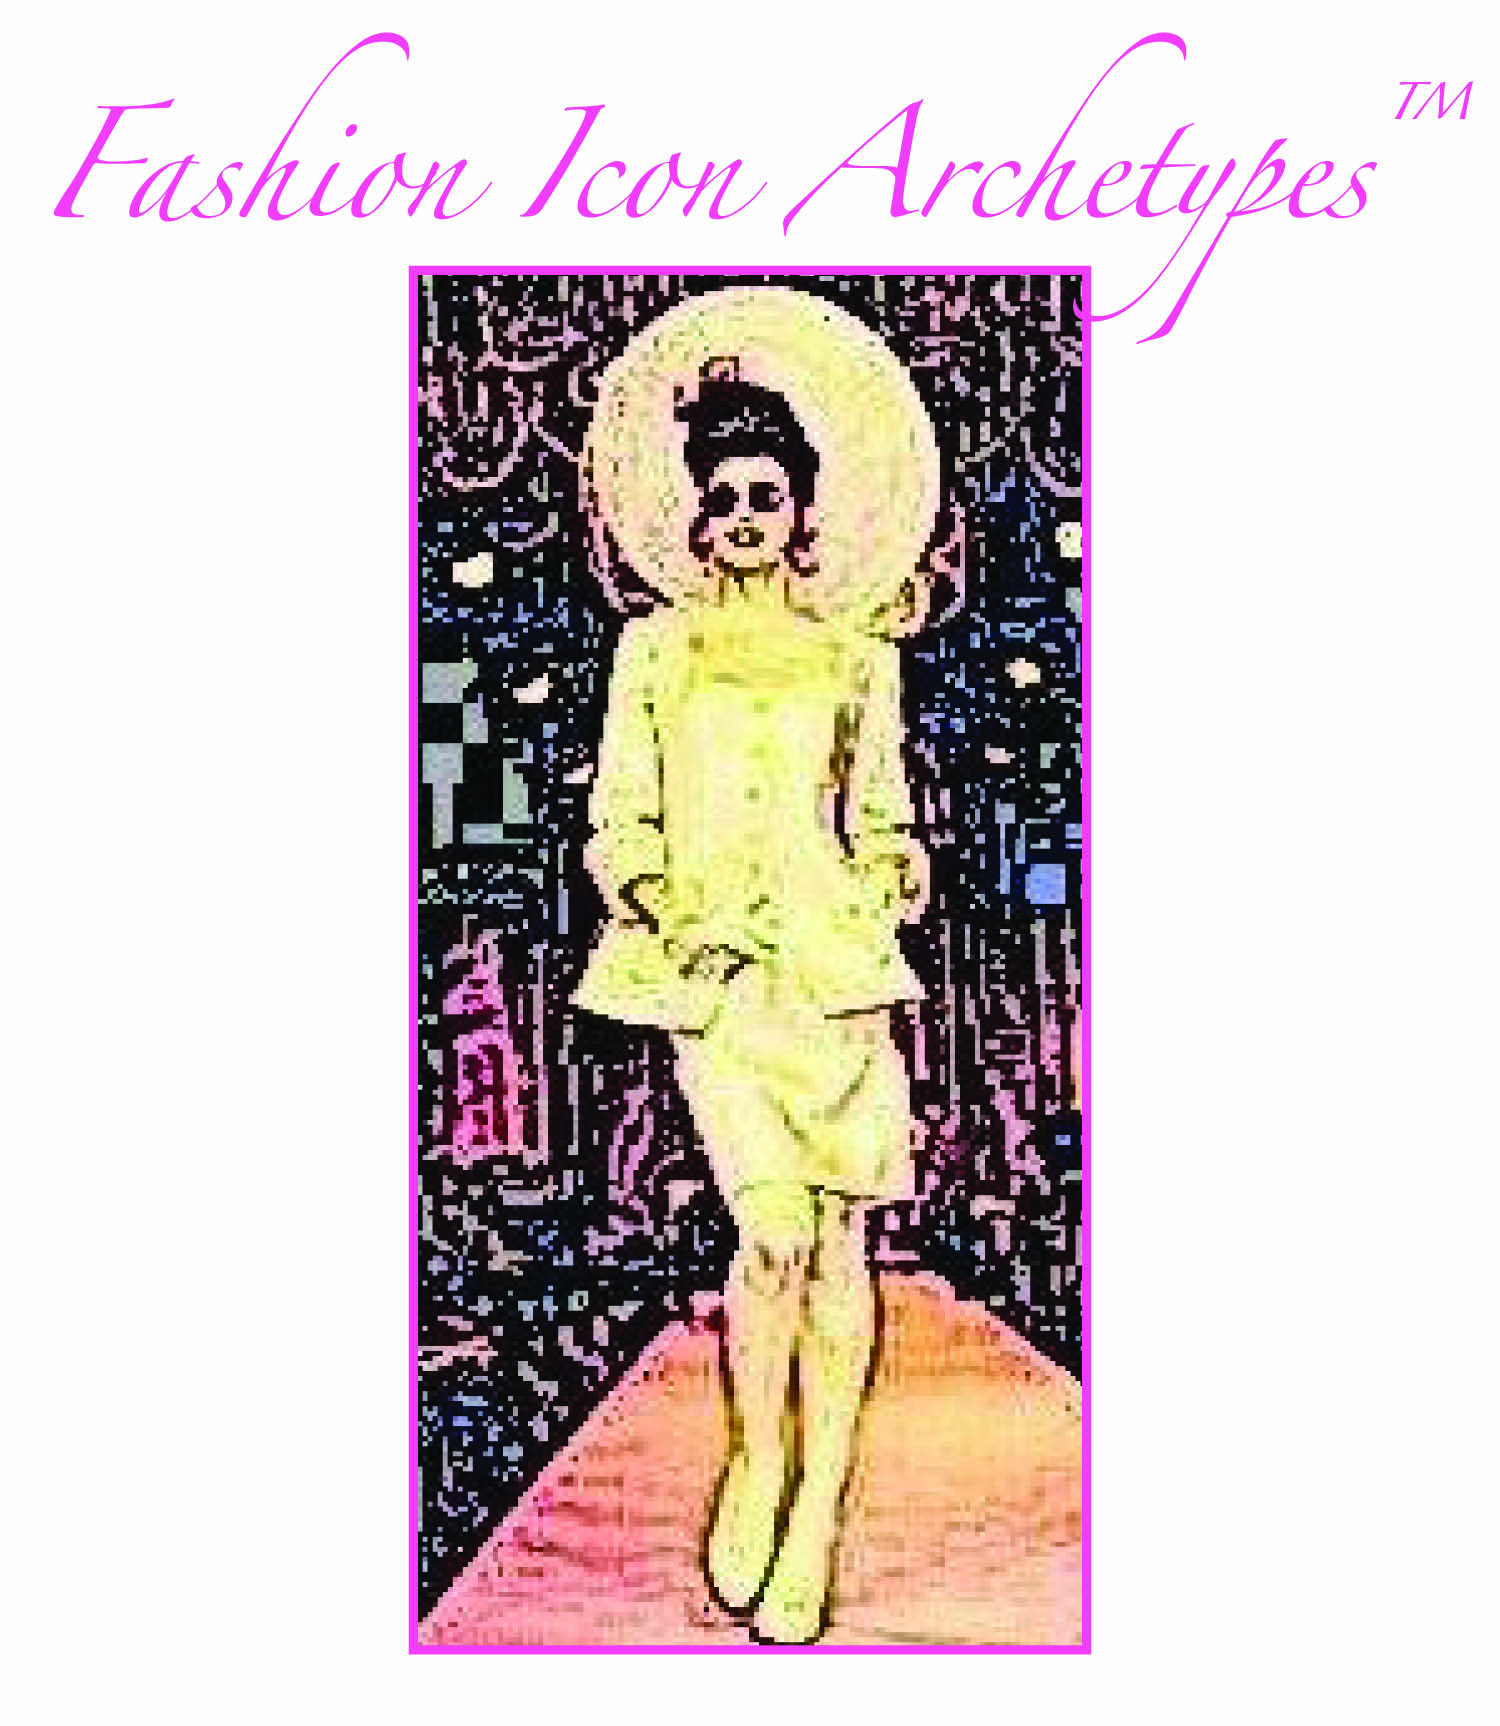 Fashion Icon Archetypes Personality Quiz